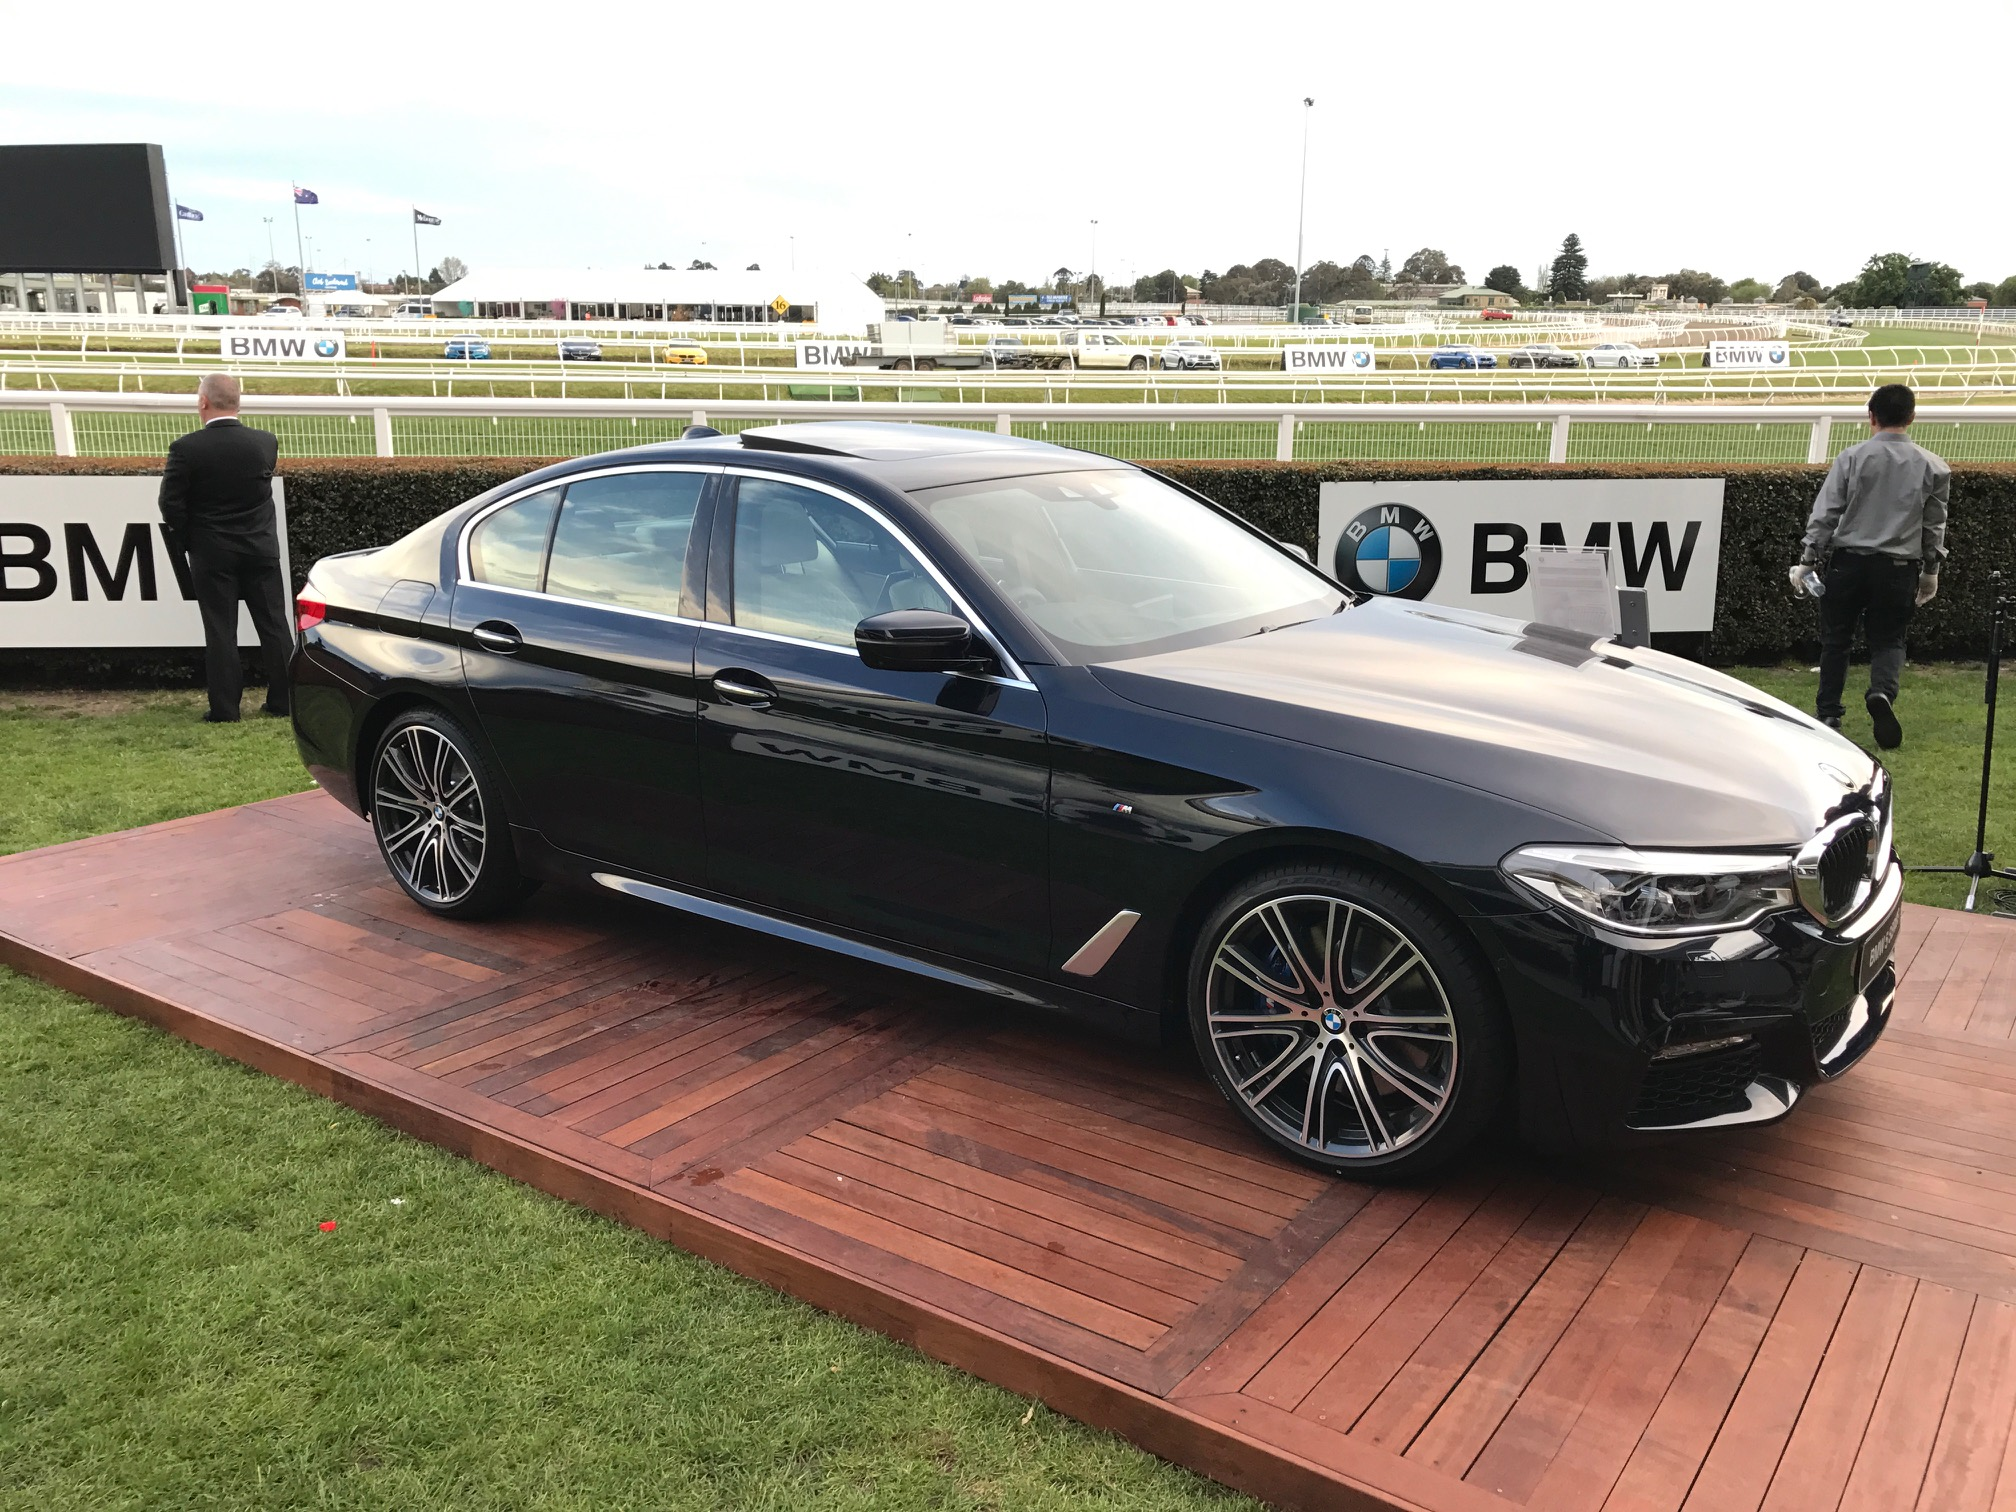 2017 bmw 5 series g30 australian first look walkaround photos 1 of 11. Black Bedroom Furniture Sets. Home Design Ideas